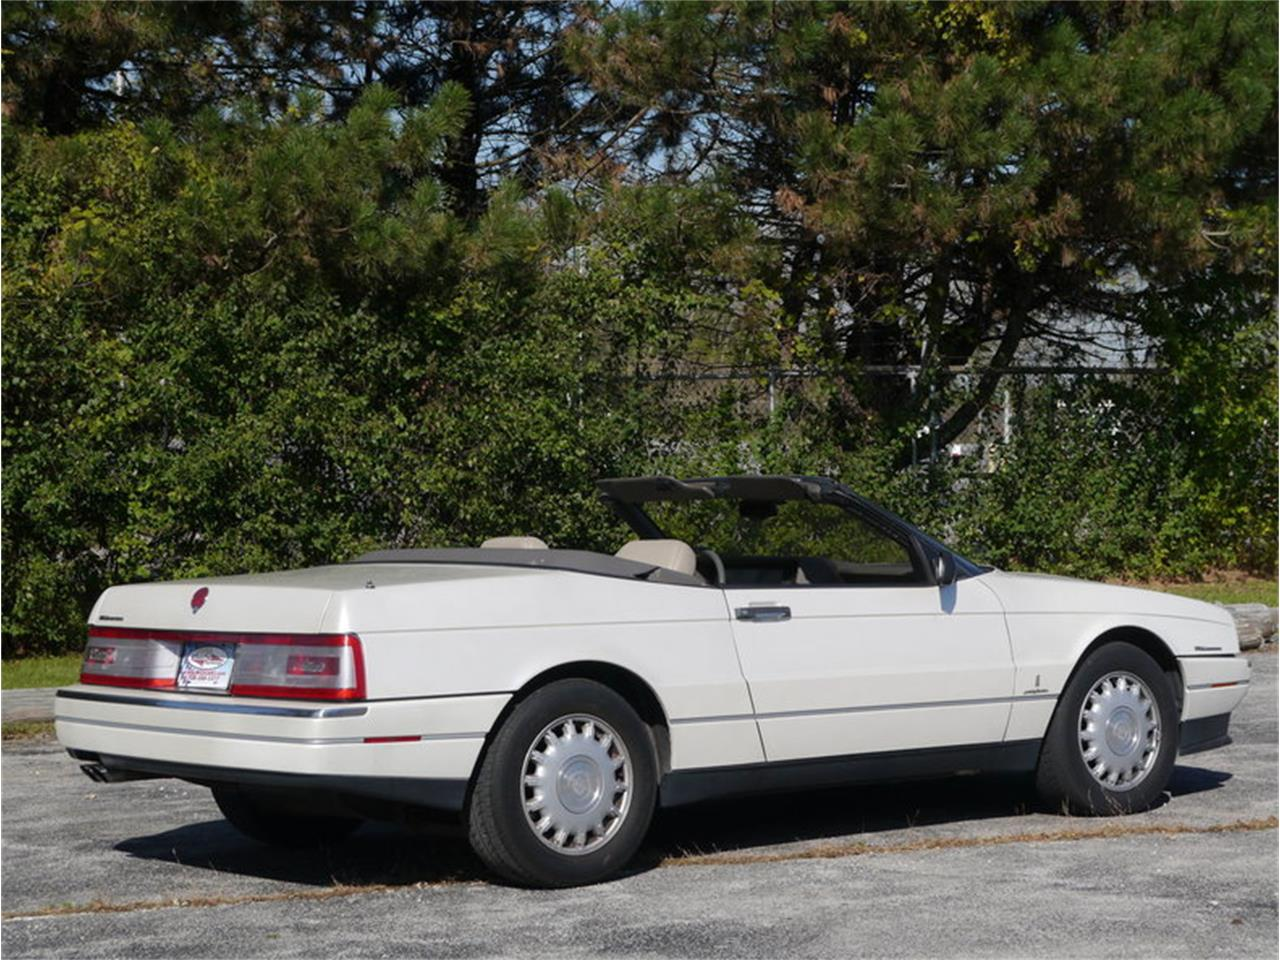 Large Picture of '93 Cadillac Allante located in Illinois Offered by Midwest Car Exchange - MD78